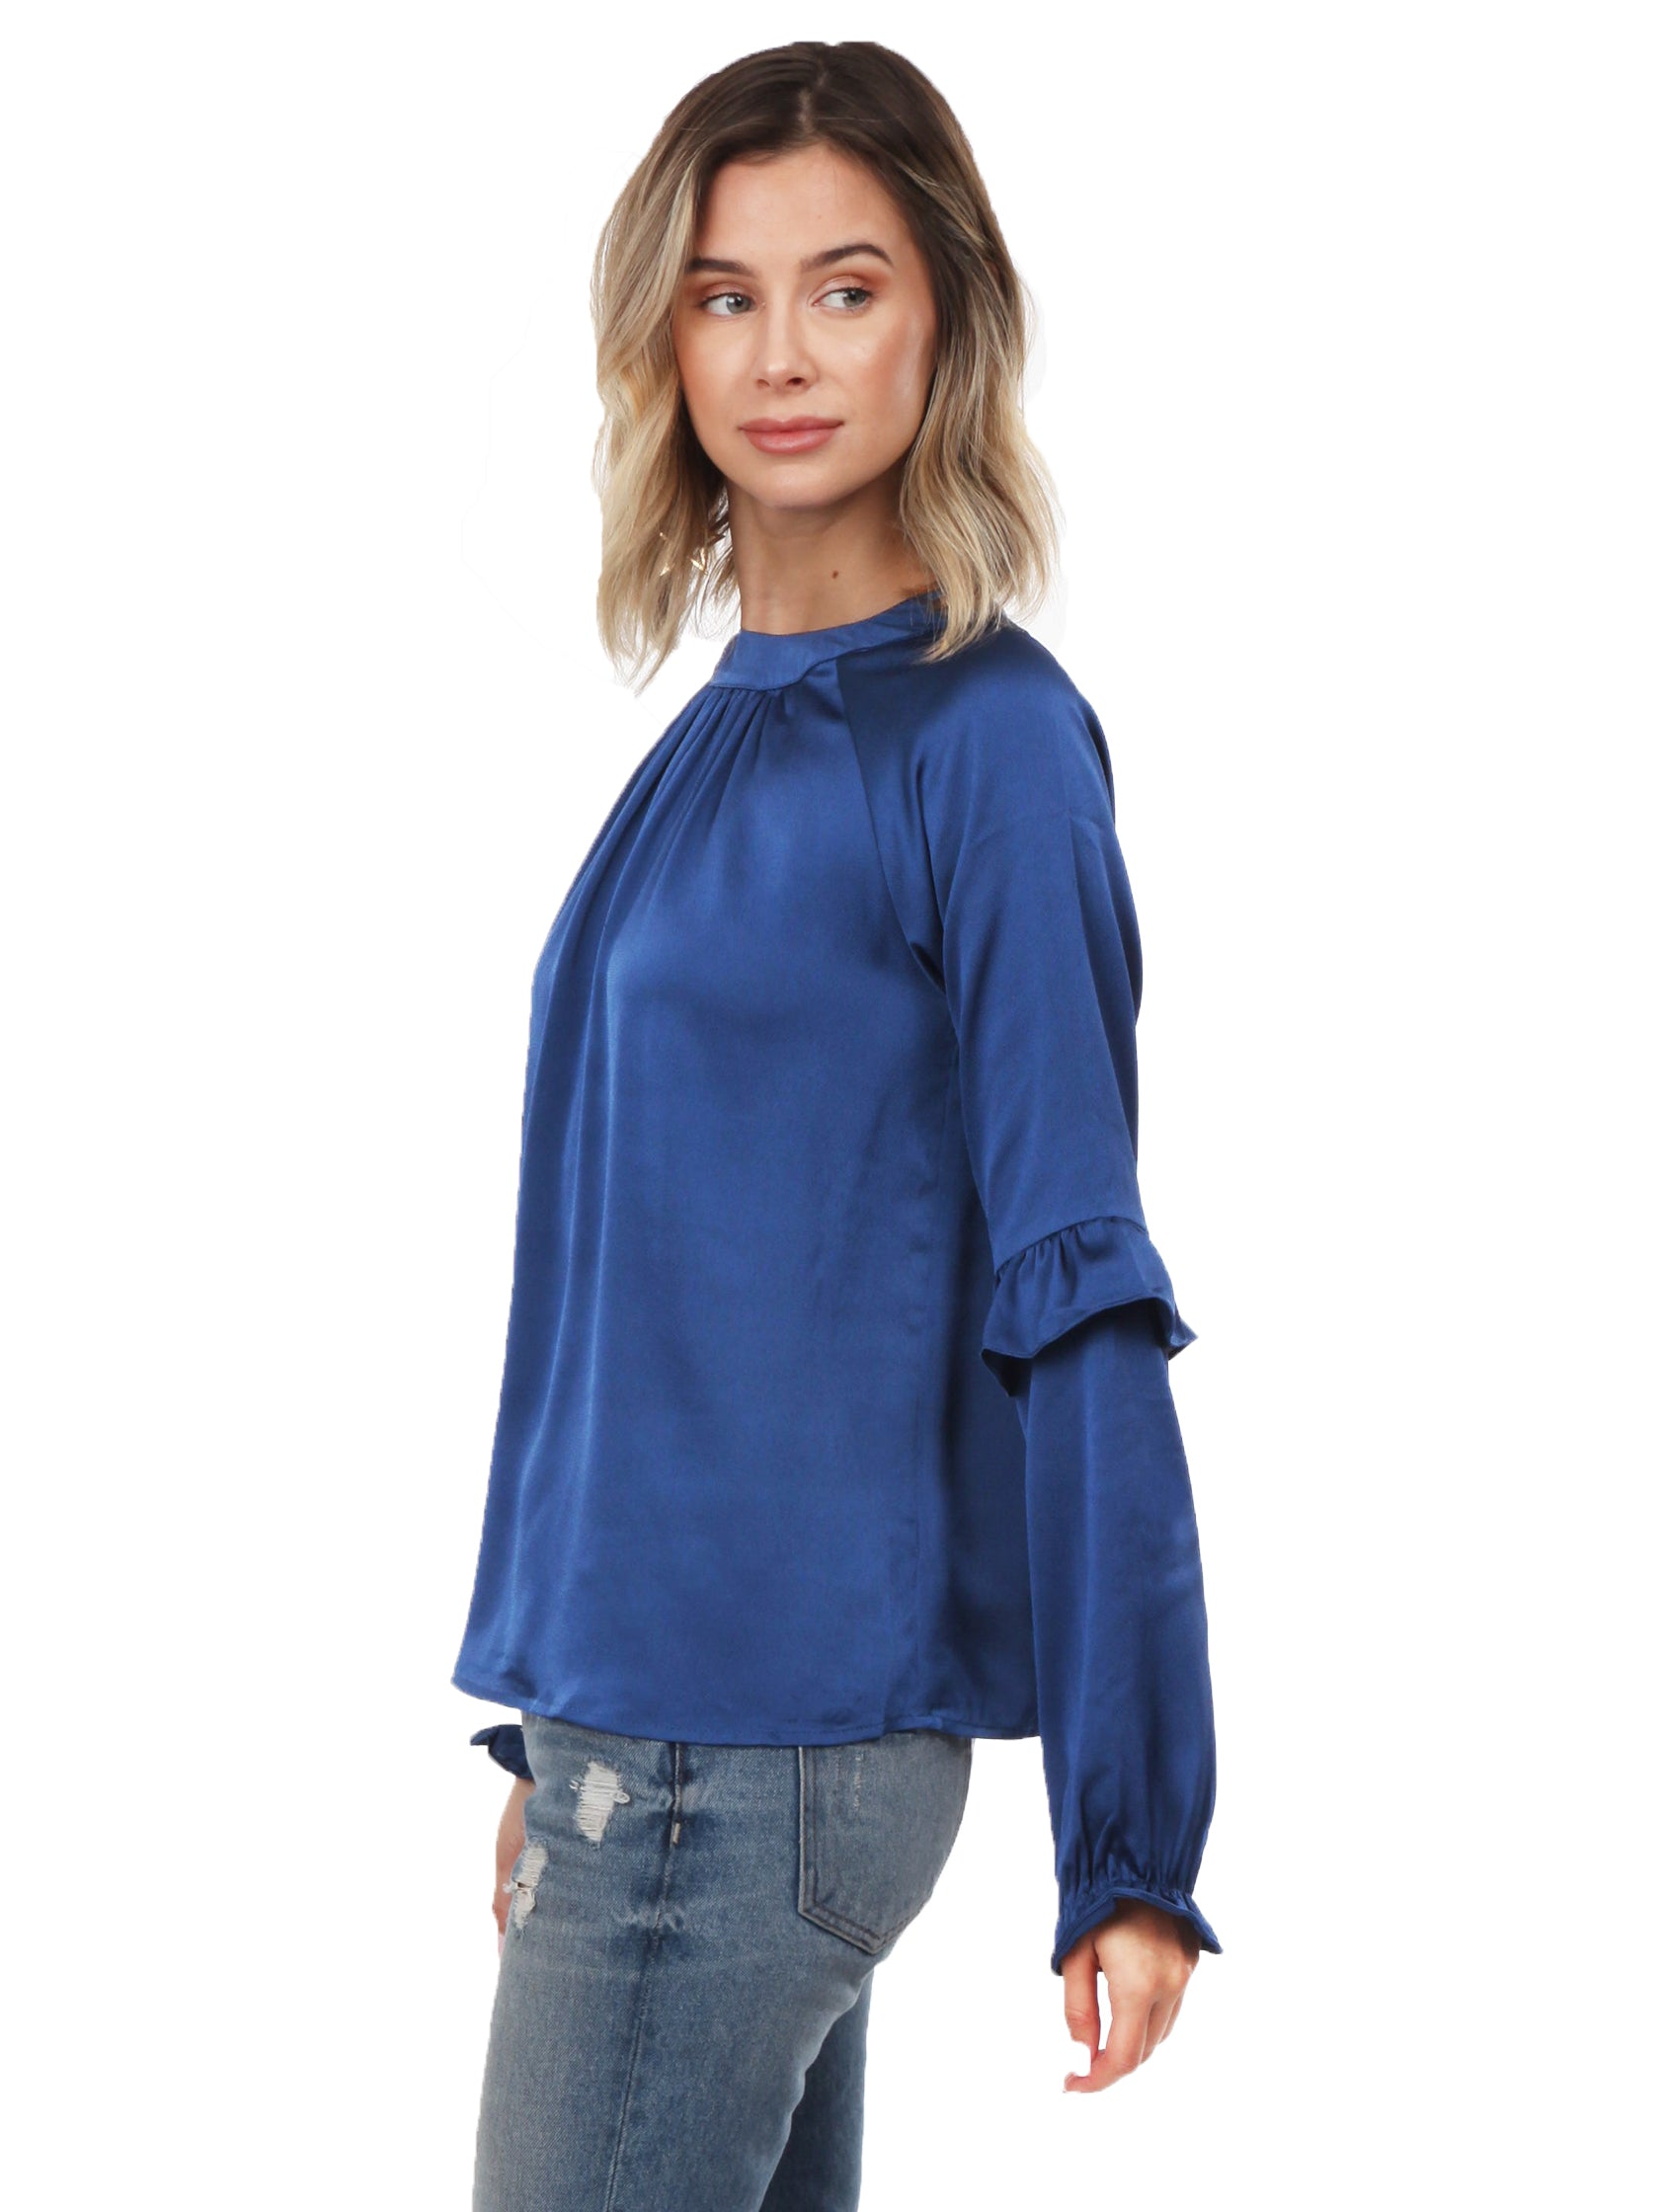 Women outfit in a top rental from LOST + WANDER called Elsa L/s Satin Top